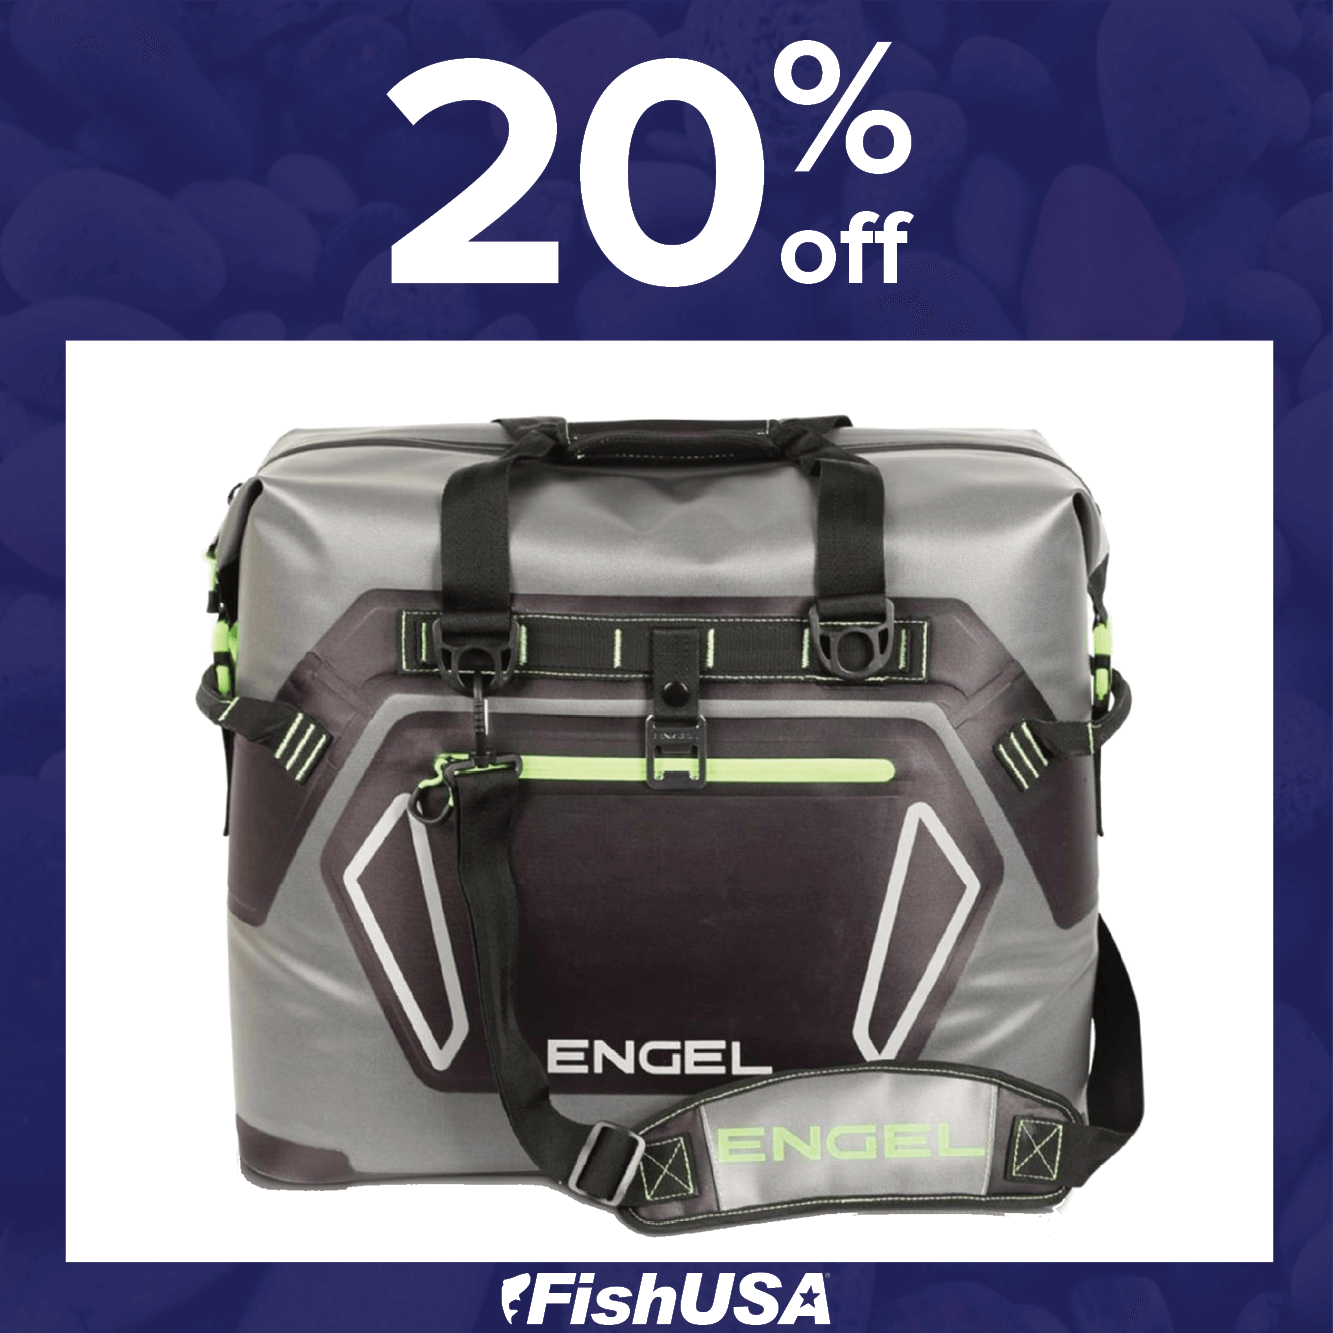 20% off the Engel High-Performance Waterproof Soft-Sided Cooler